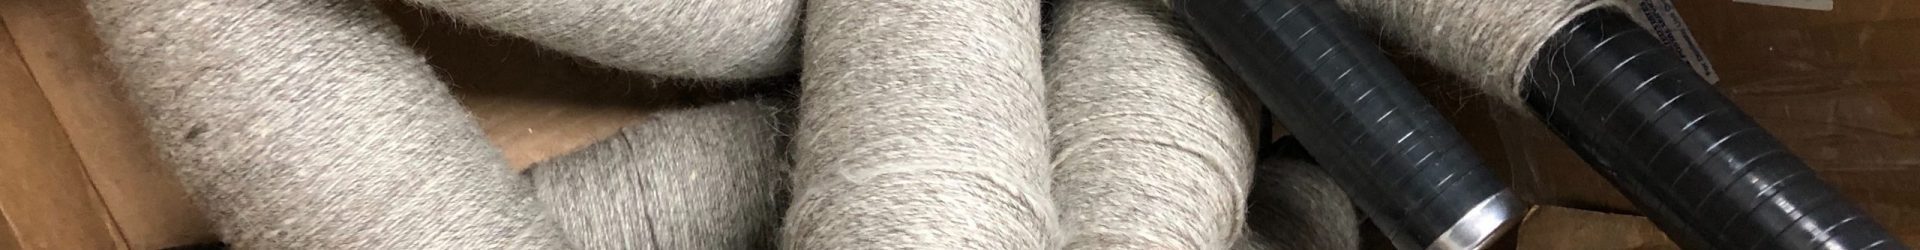 Category: Yarn